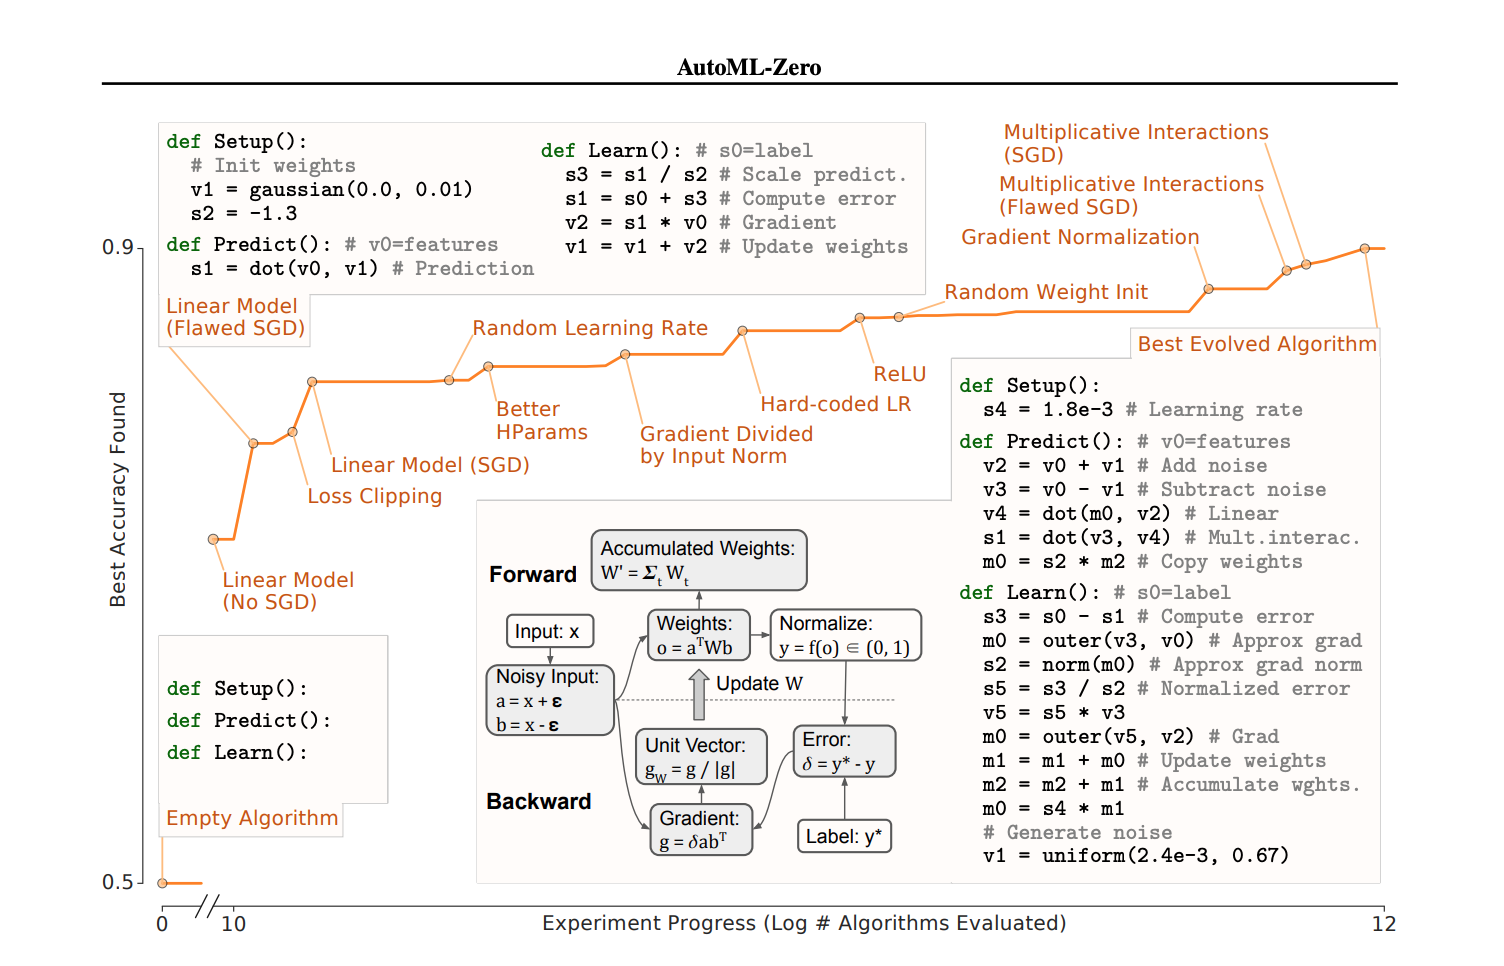 Automating Machine Learning: Google AutoML-Zero Evolves ML Algorithms From Scratch